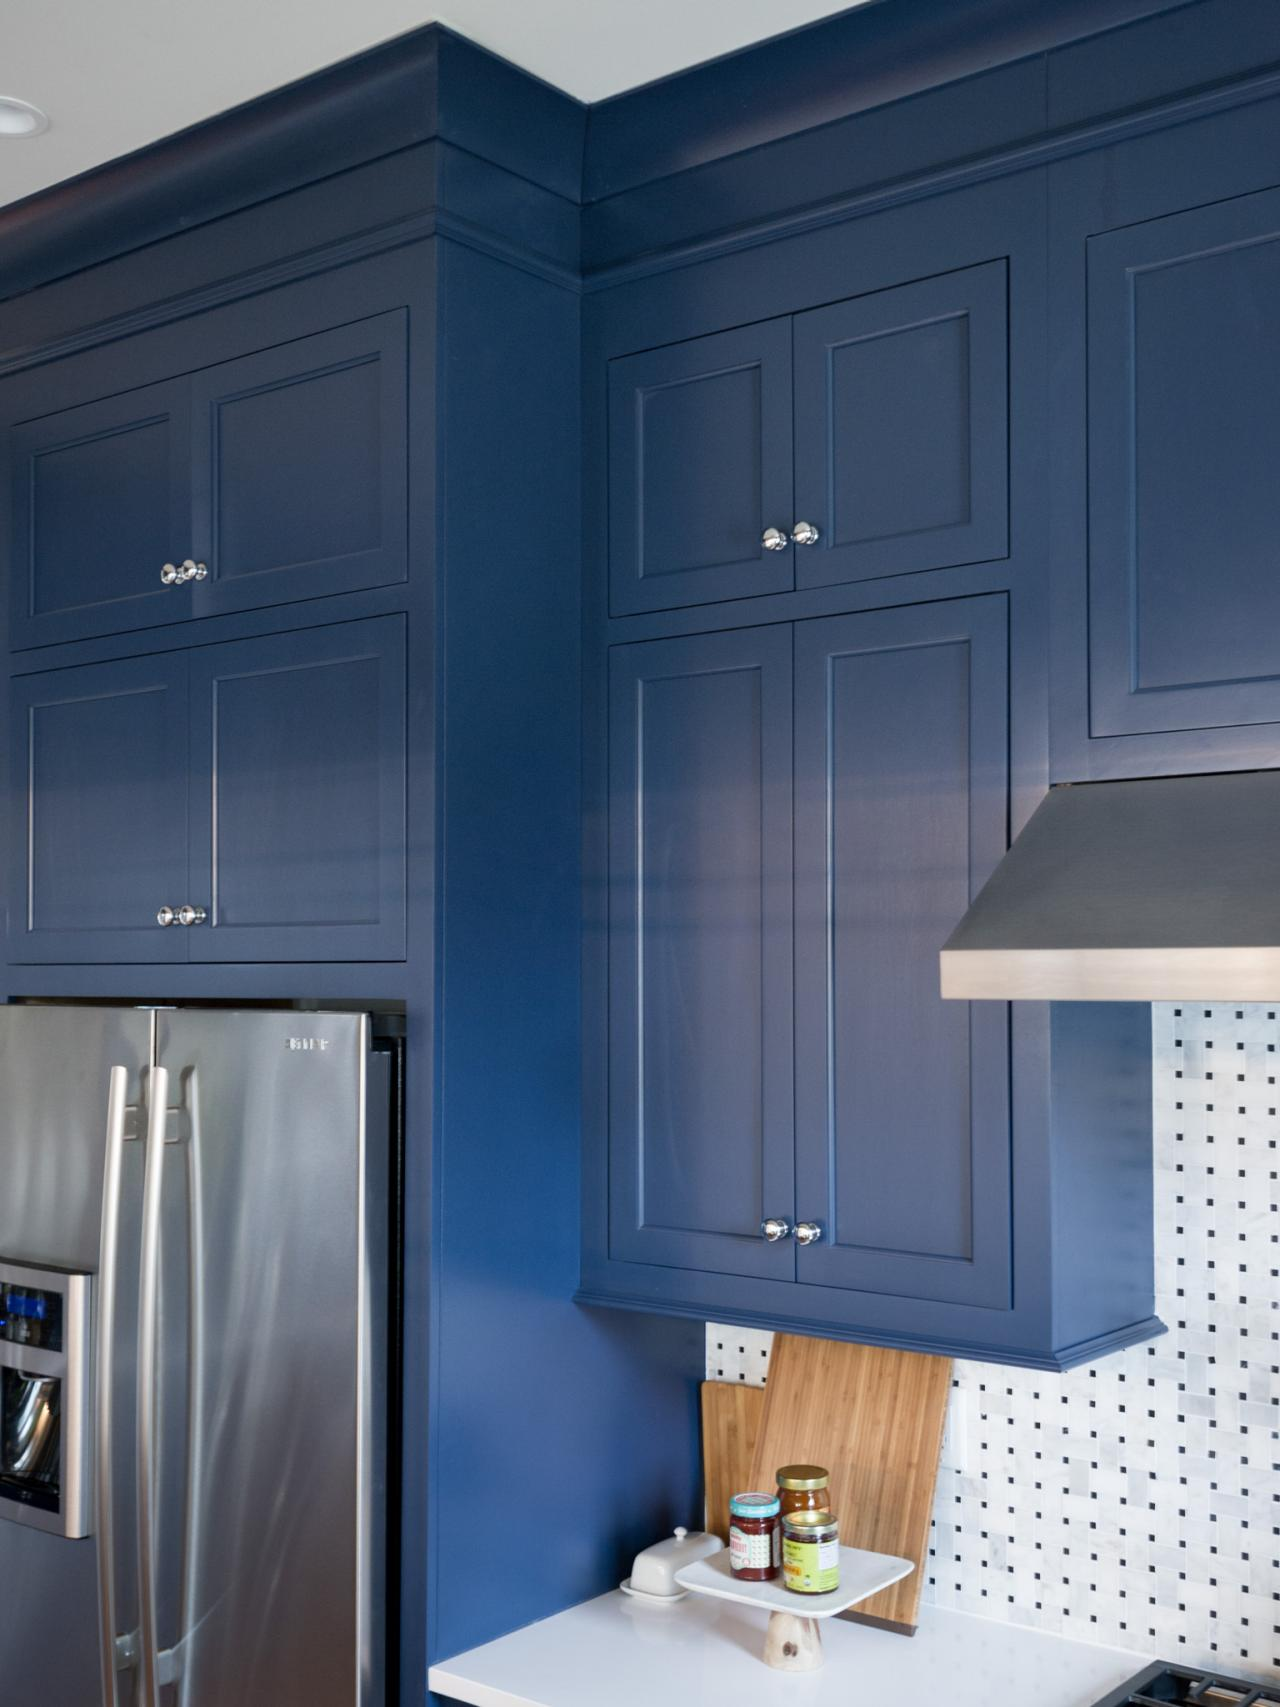 Photos hgtv for Dark blue kitchen cabinets